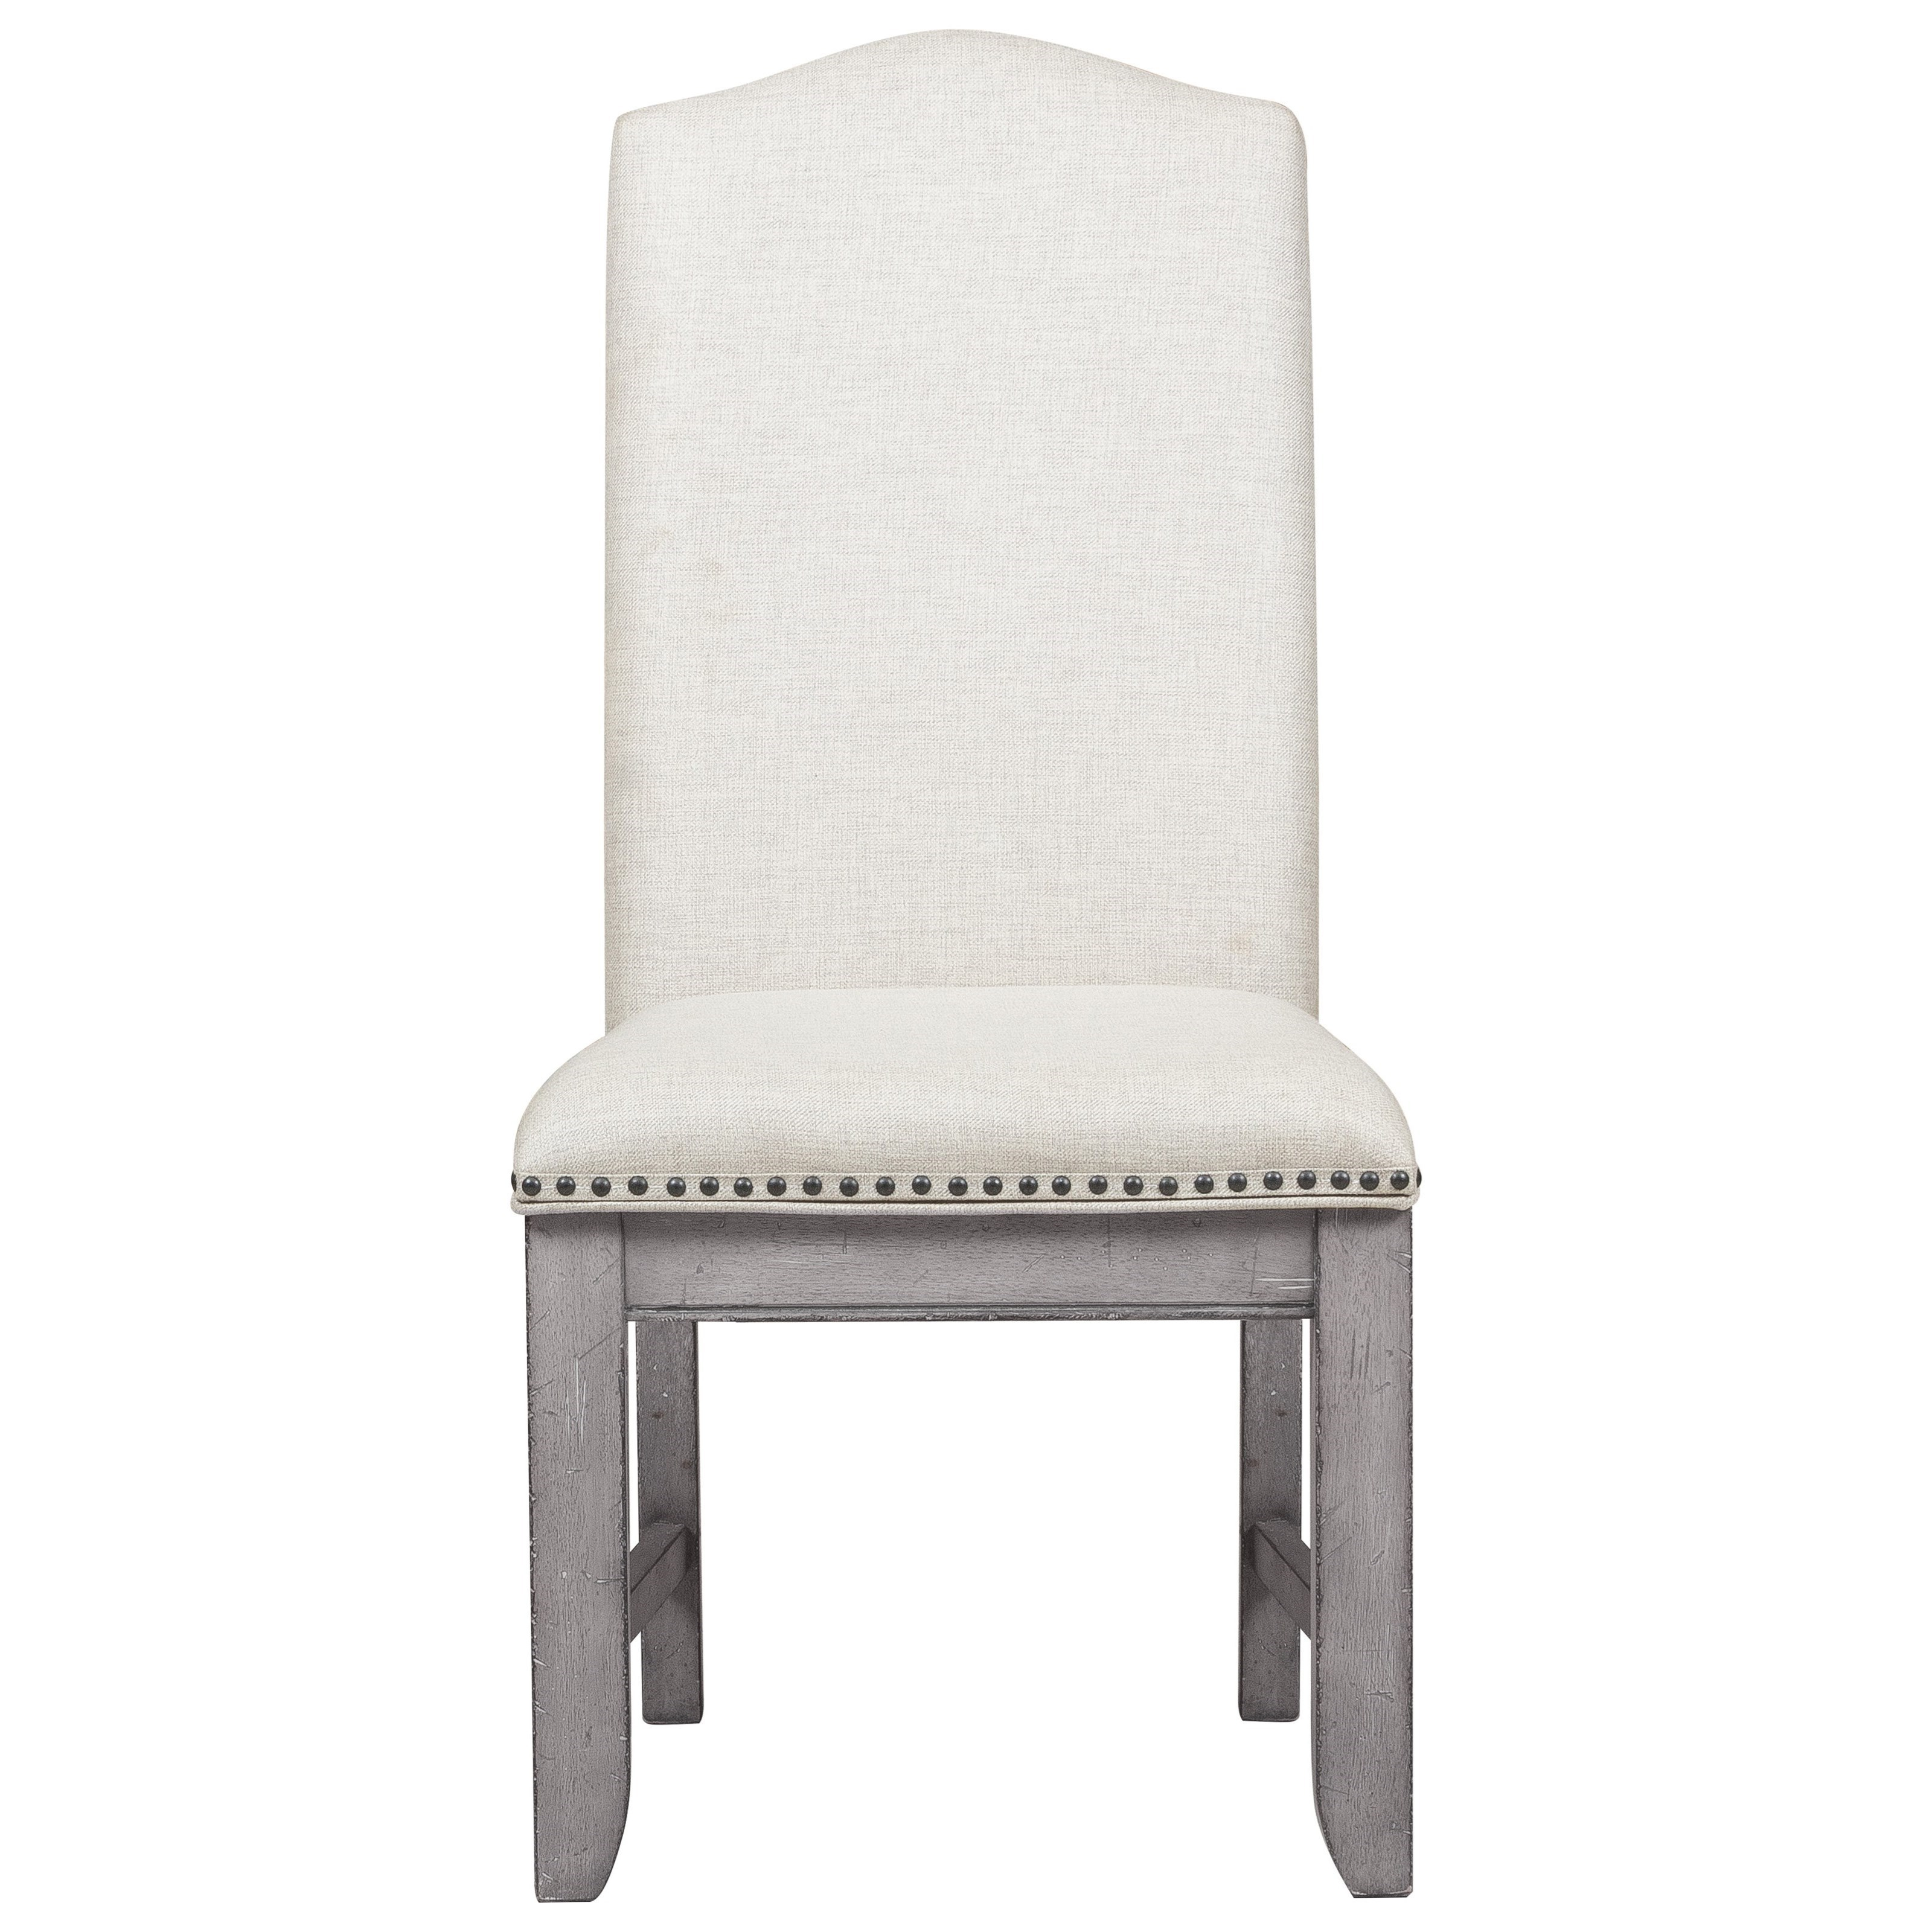 Samuel Lawrence Prospect Hill Upholstered Side Chair With Nail Head Trim |  Value City Furniture | Dining Side Chairs